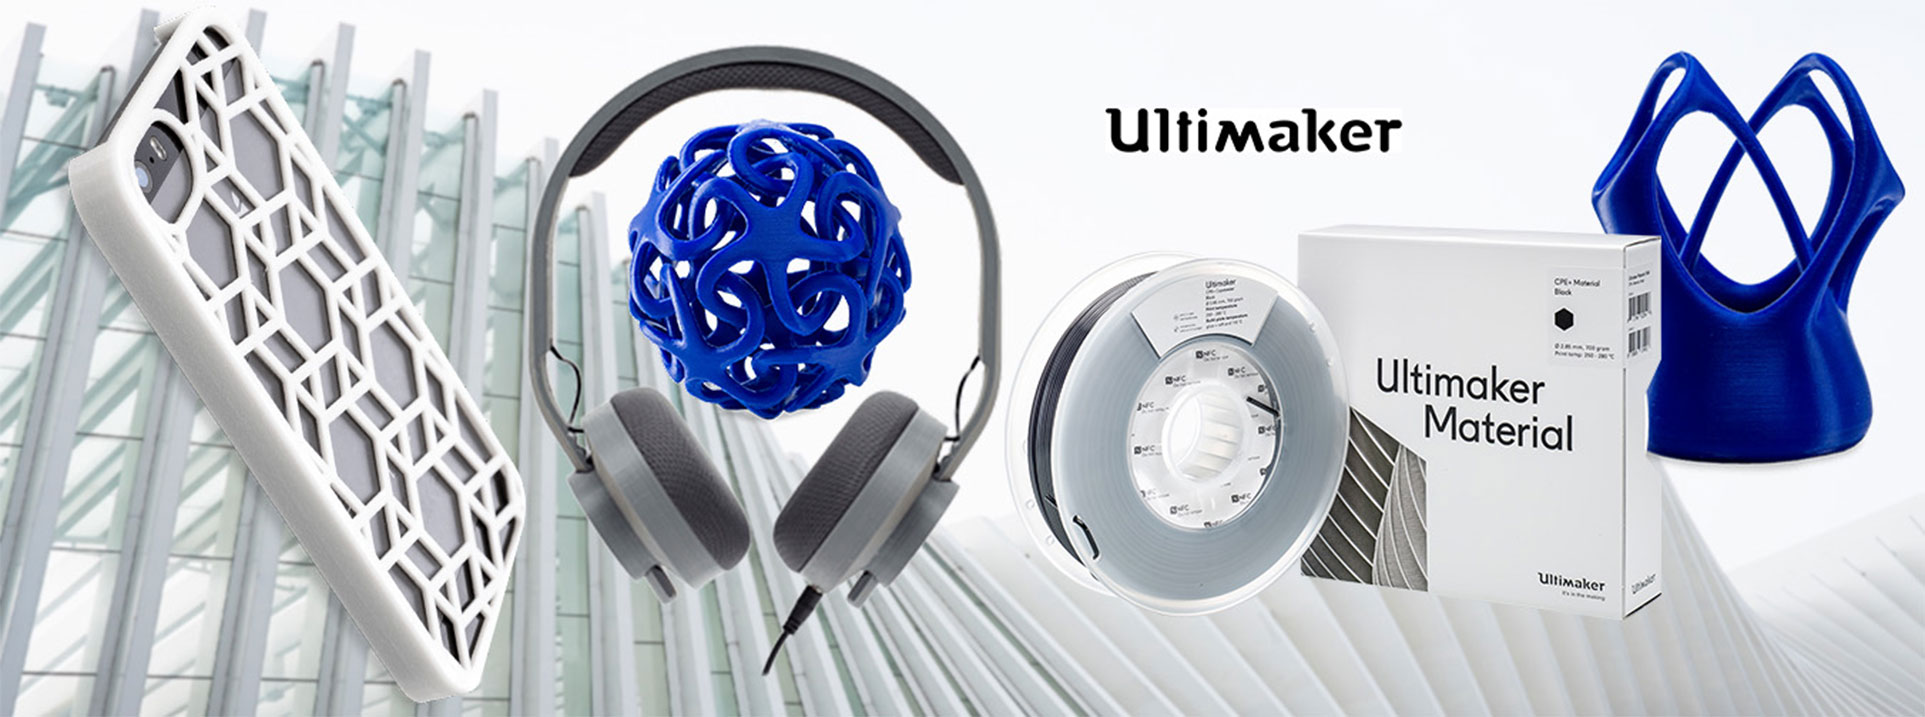 ultimaker-filaments_banner2.web.jpg